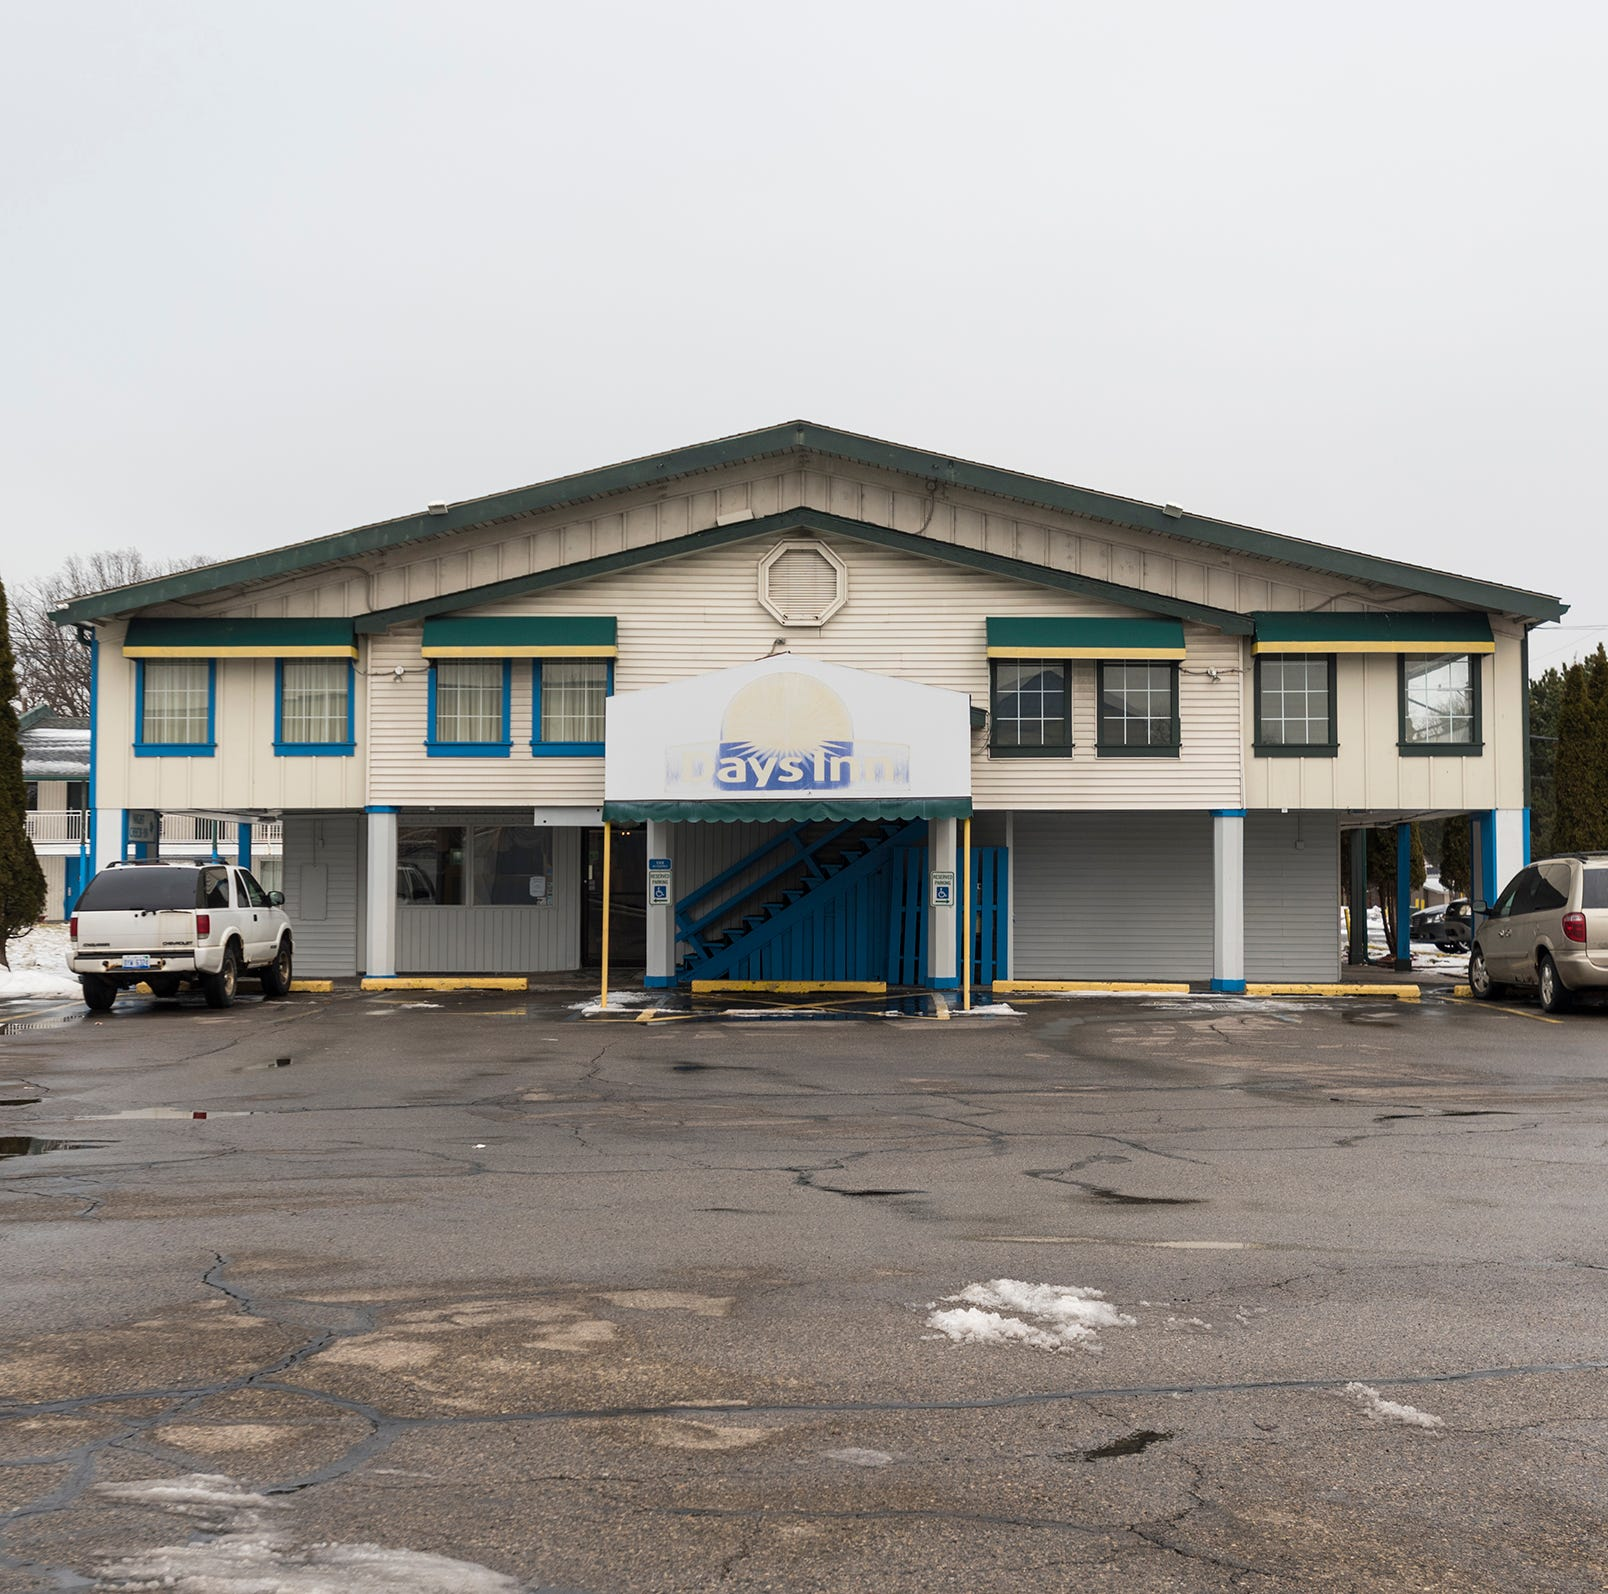 City files 'public nuisance' lawsuit against Days Inn